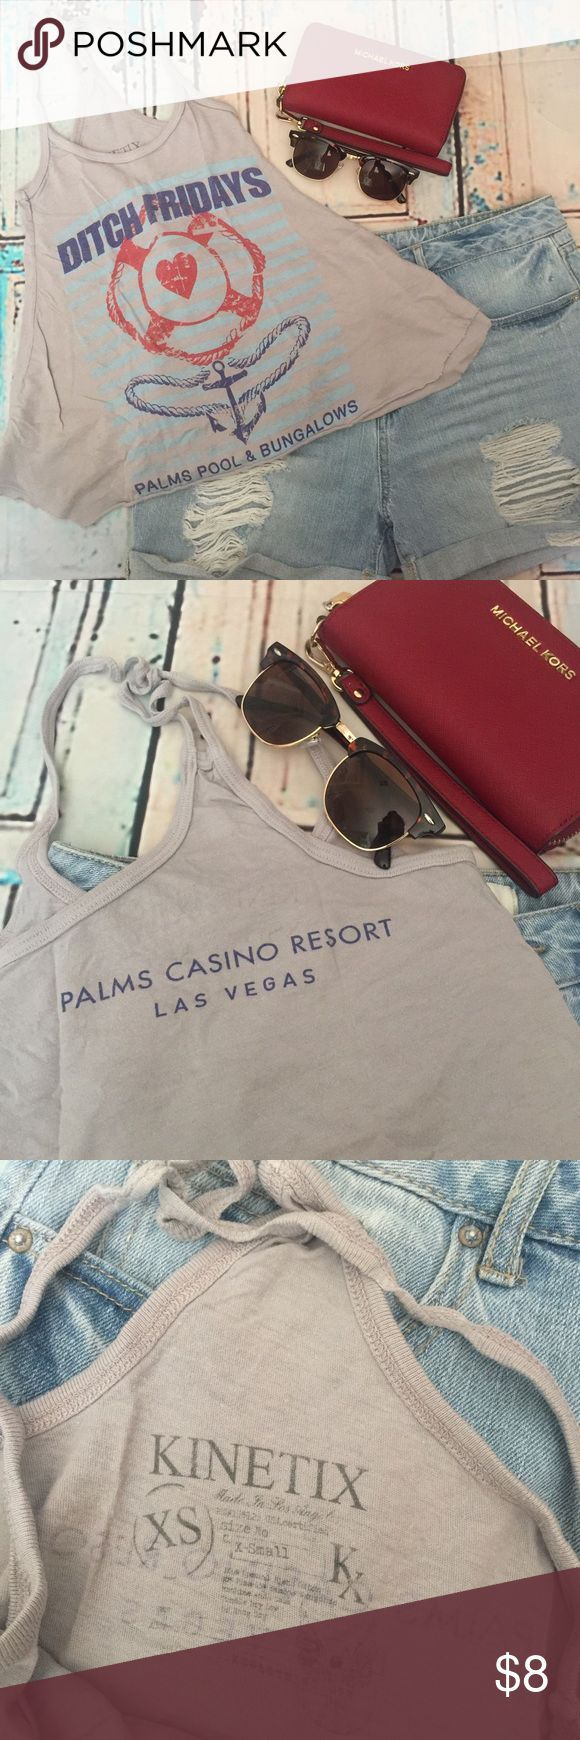 ⚡️Sale⚡️Palms Casino Resort Racerback Crop Top 🌸in used condition, straps were really long so I had it in a knot. Just recently unknotted it. Kinetix Tops Tank Tops